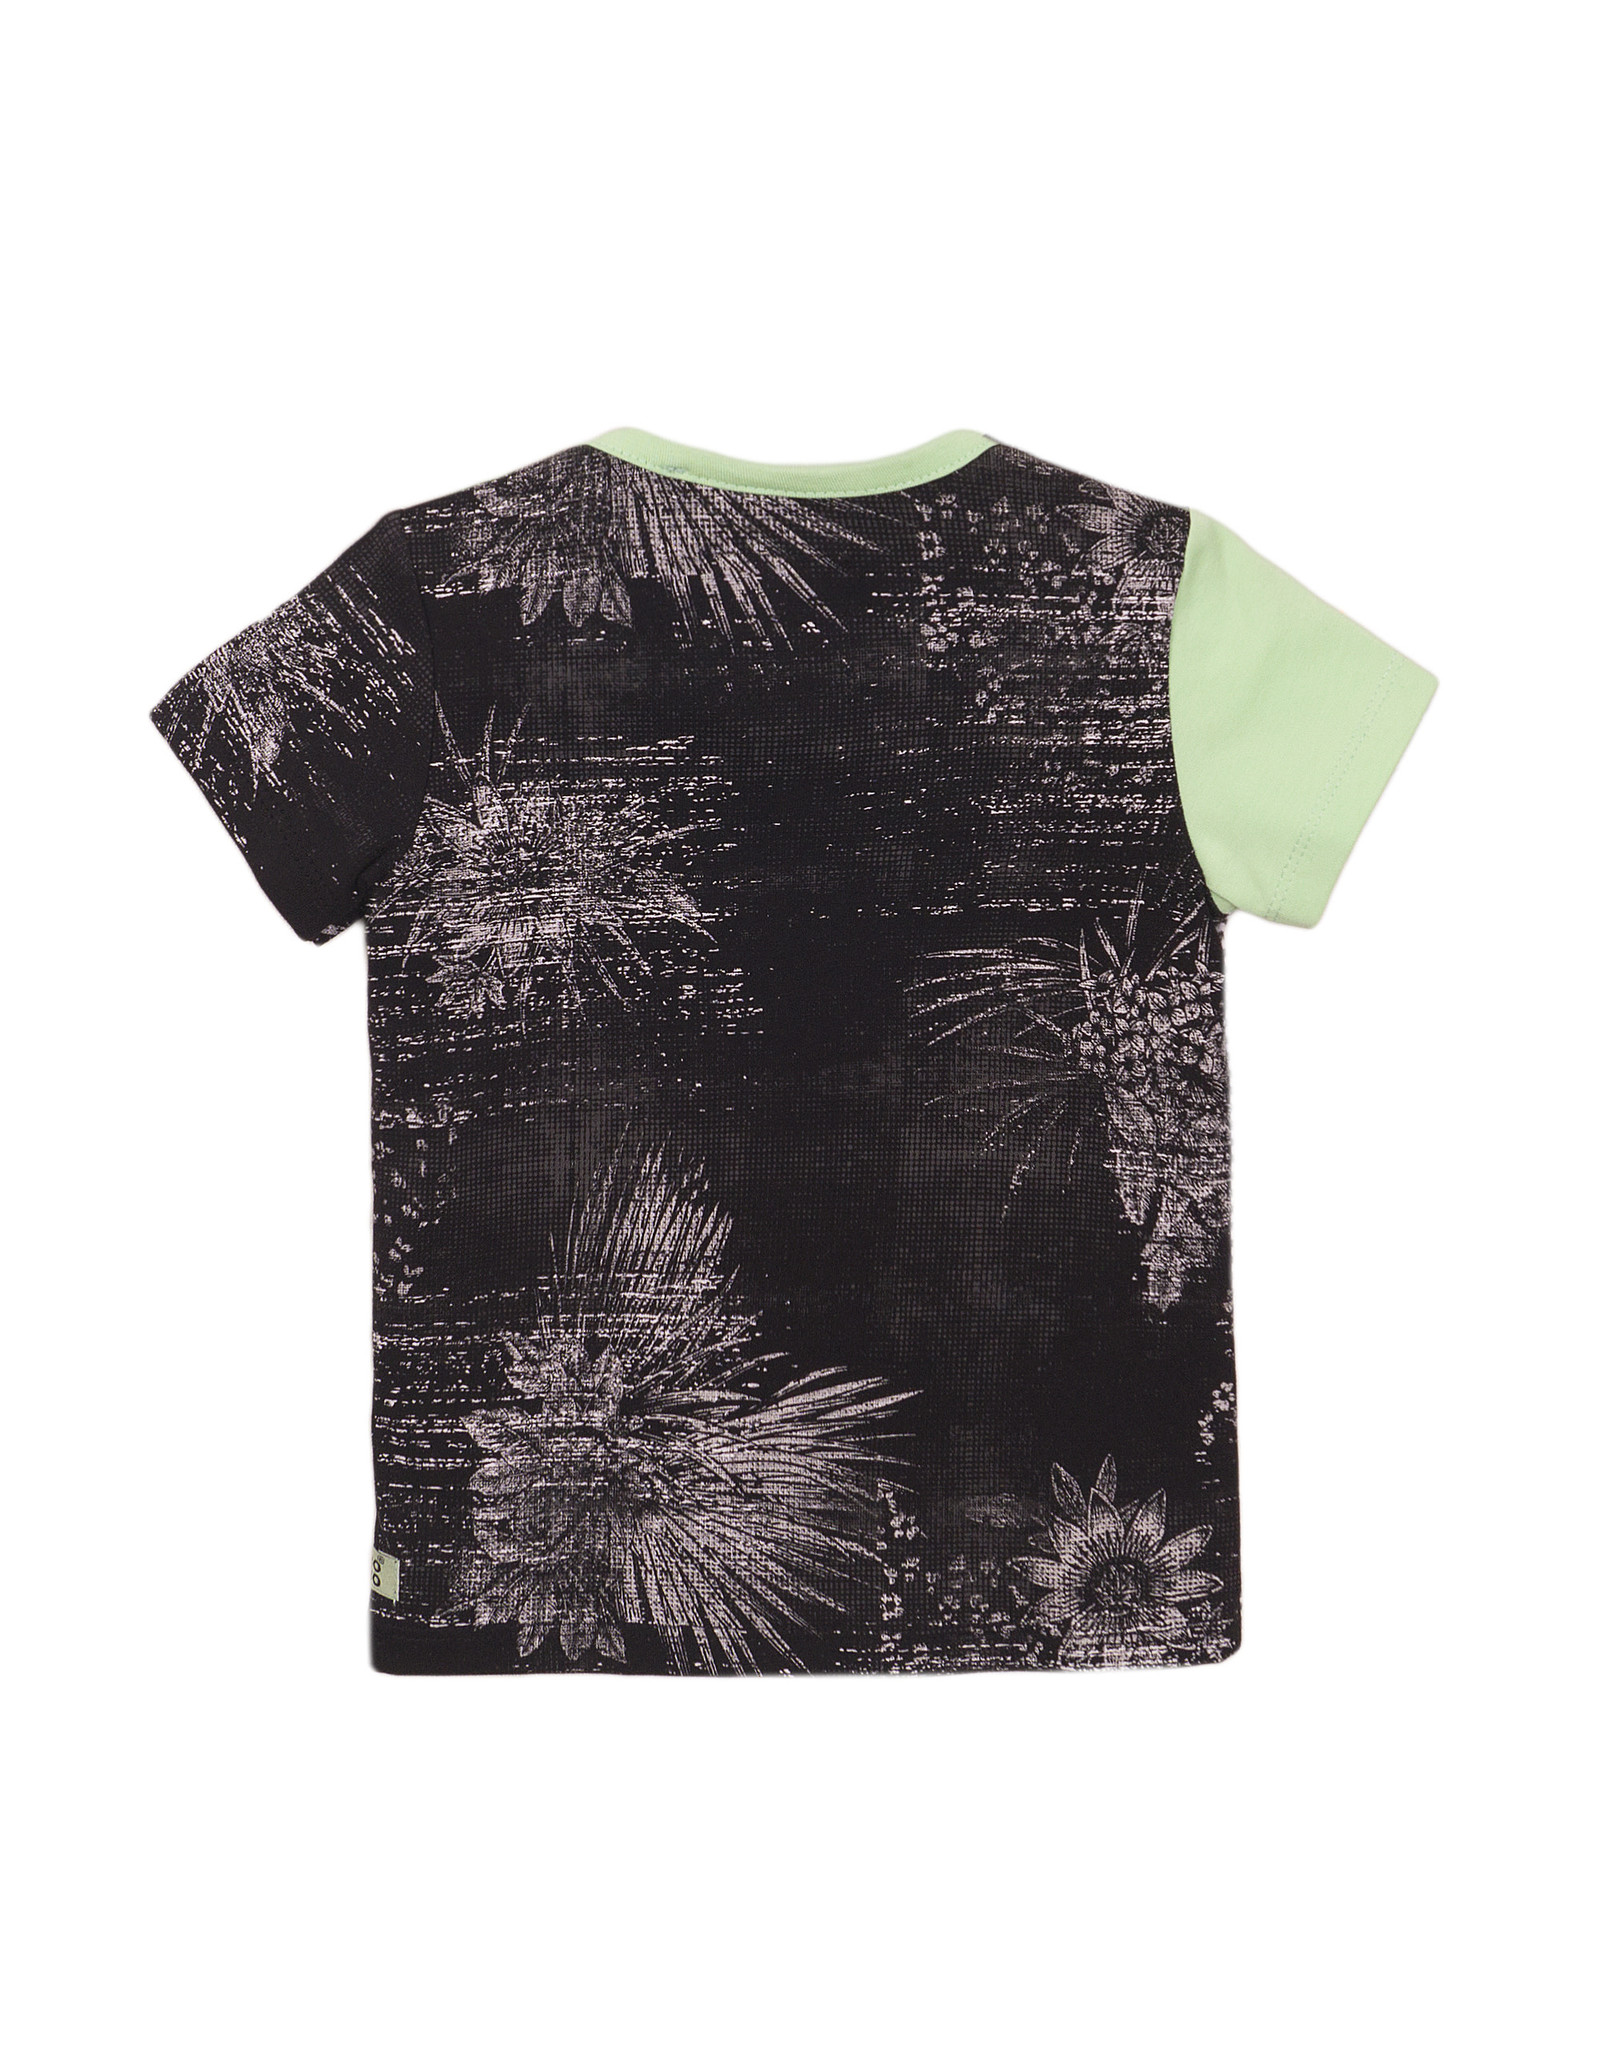 Koko Noko Koko Noko jongens t-shirt Flower Faded Green Dark Grey